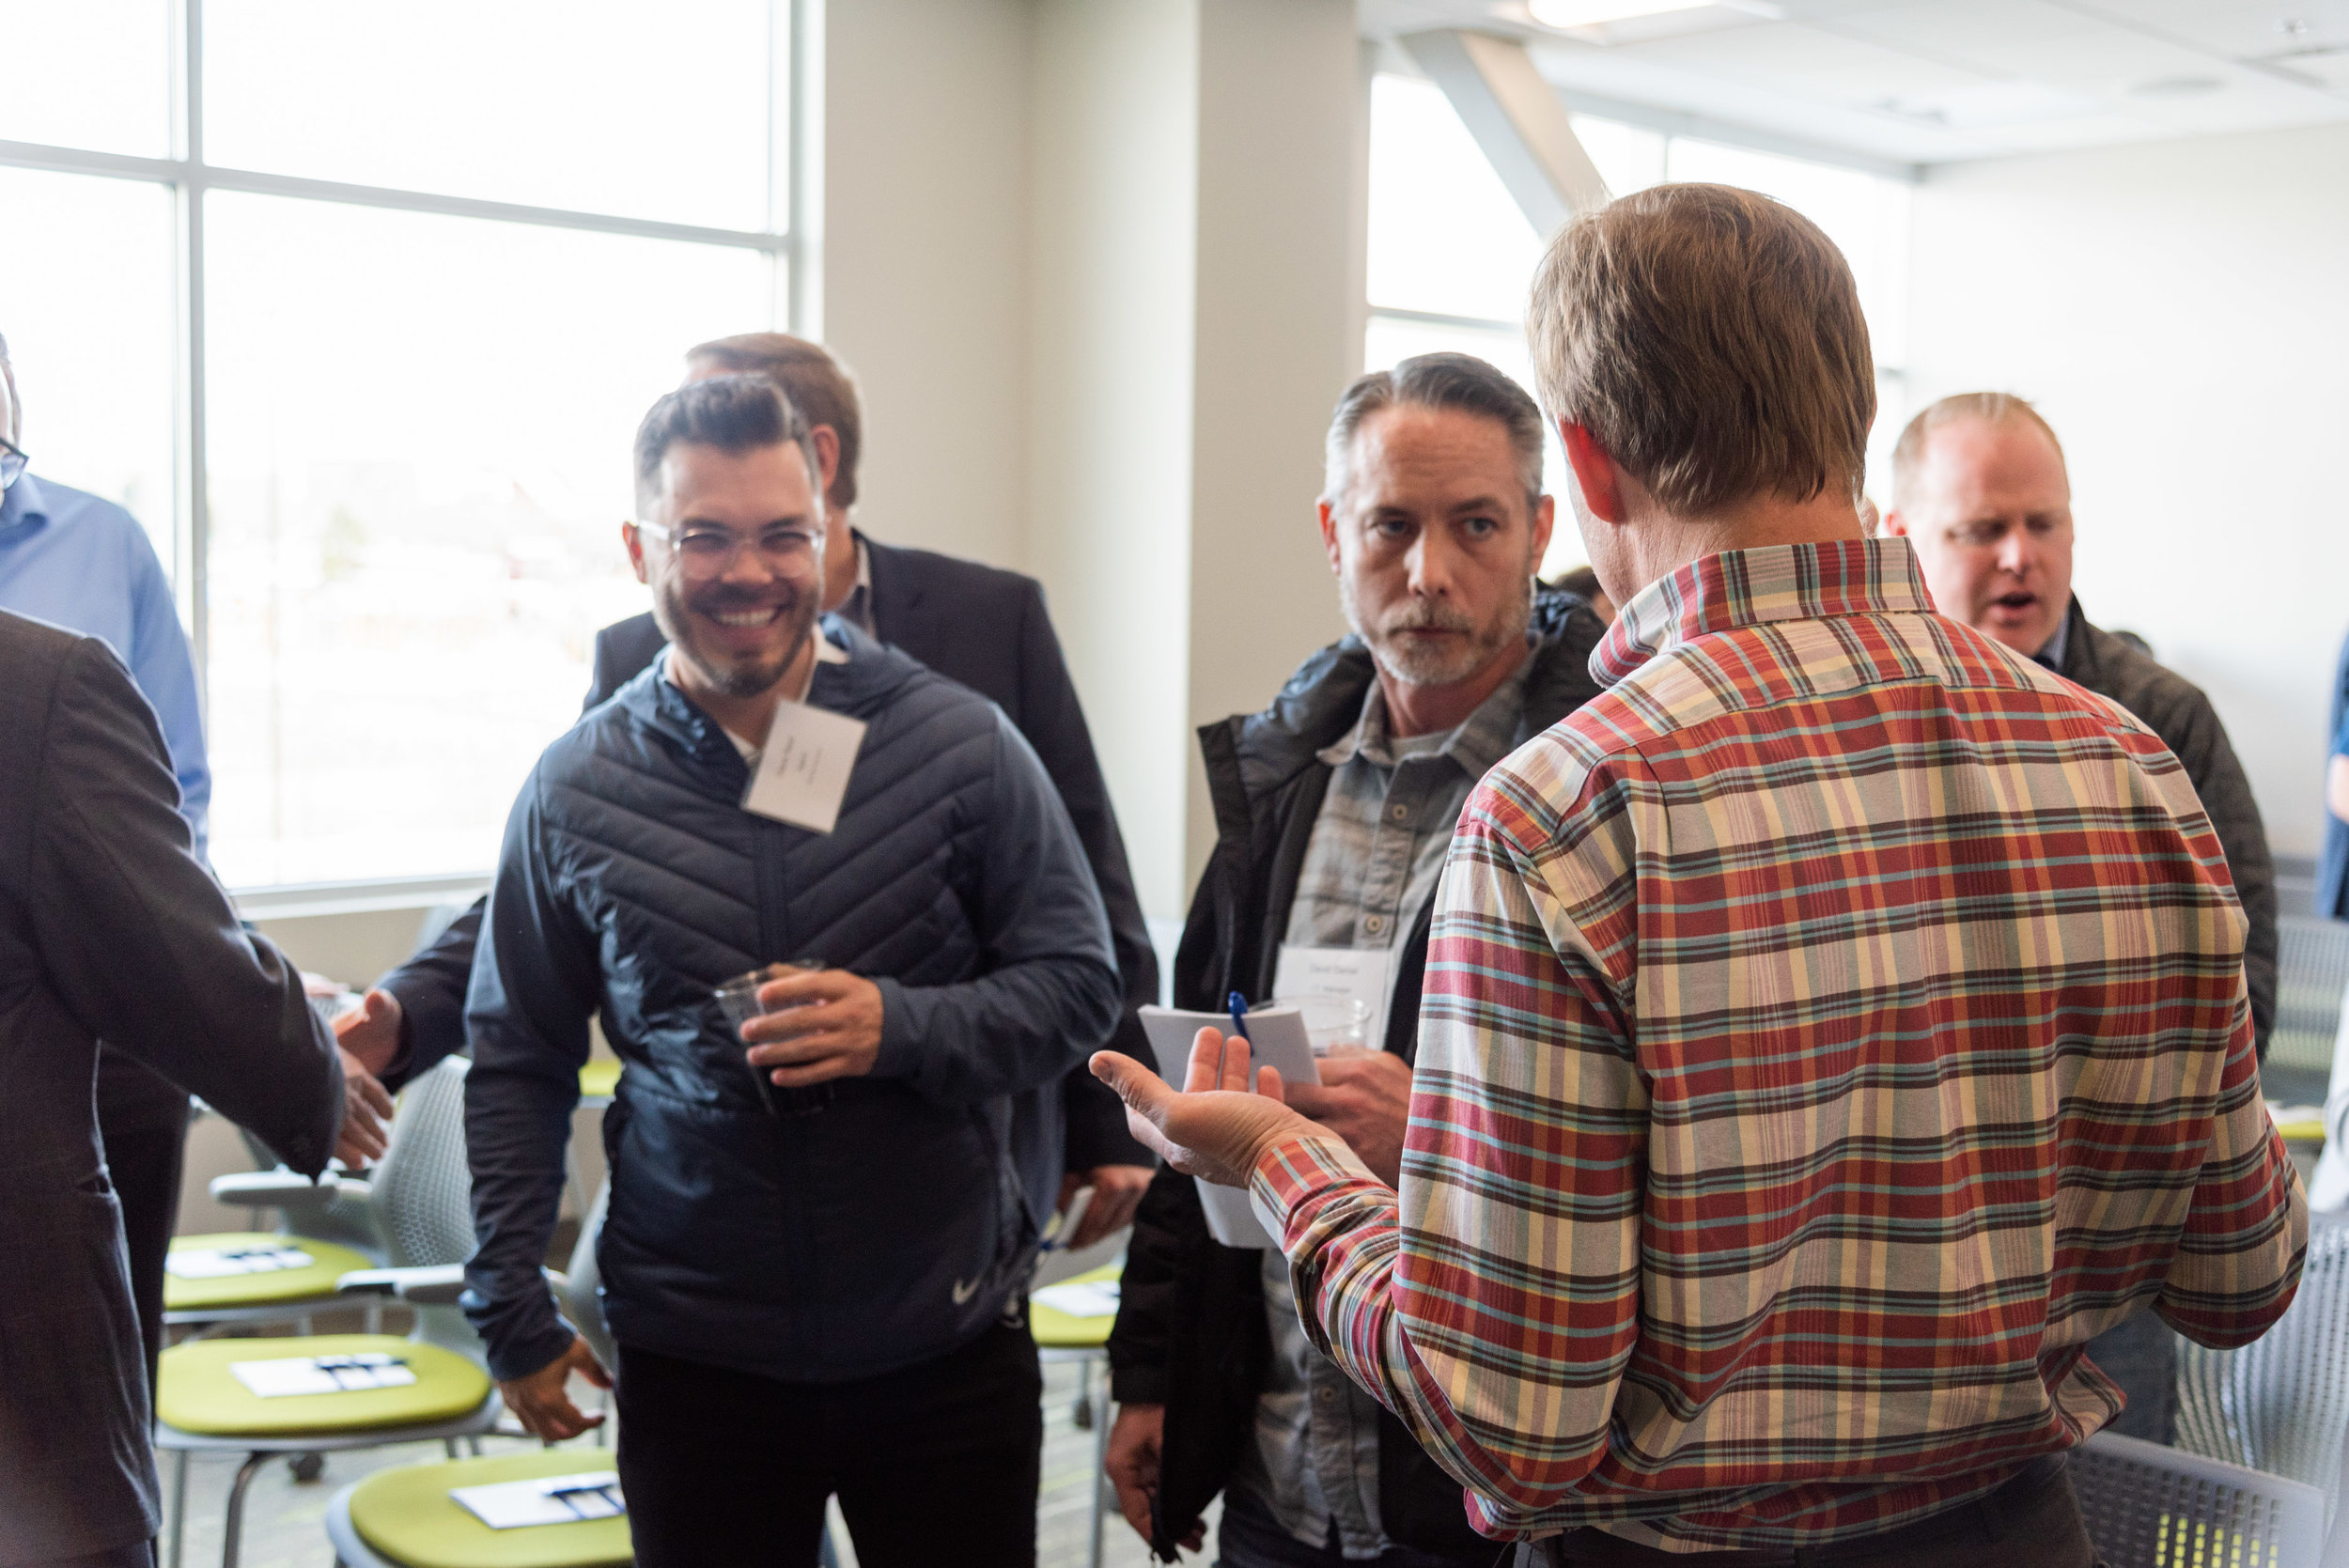 Focus on genuinely getting to know people when you network.